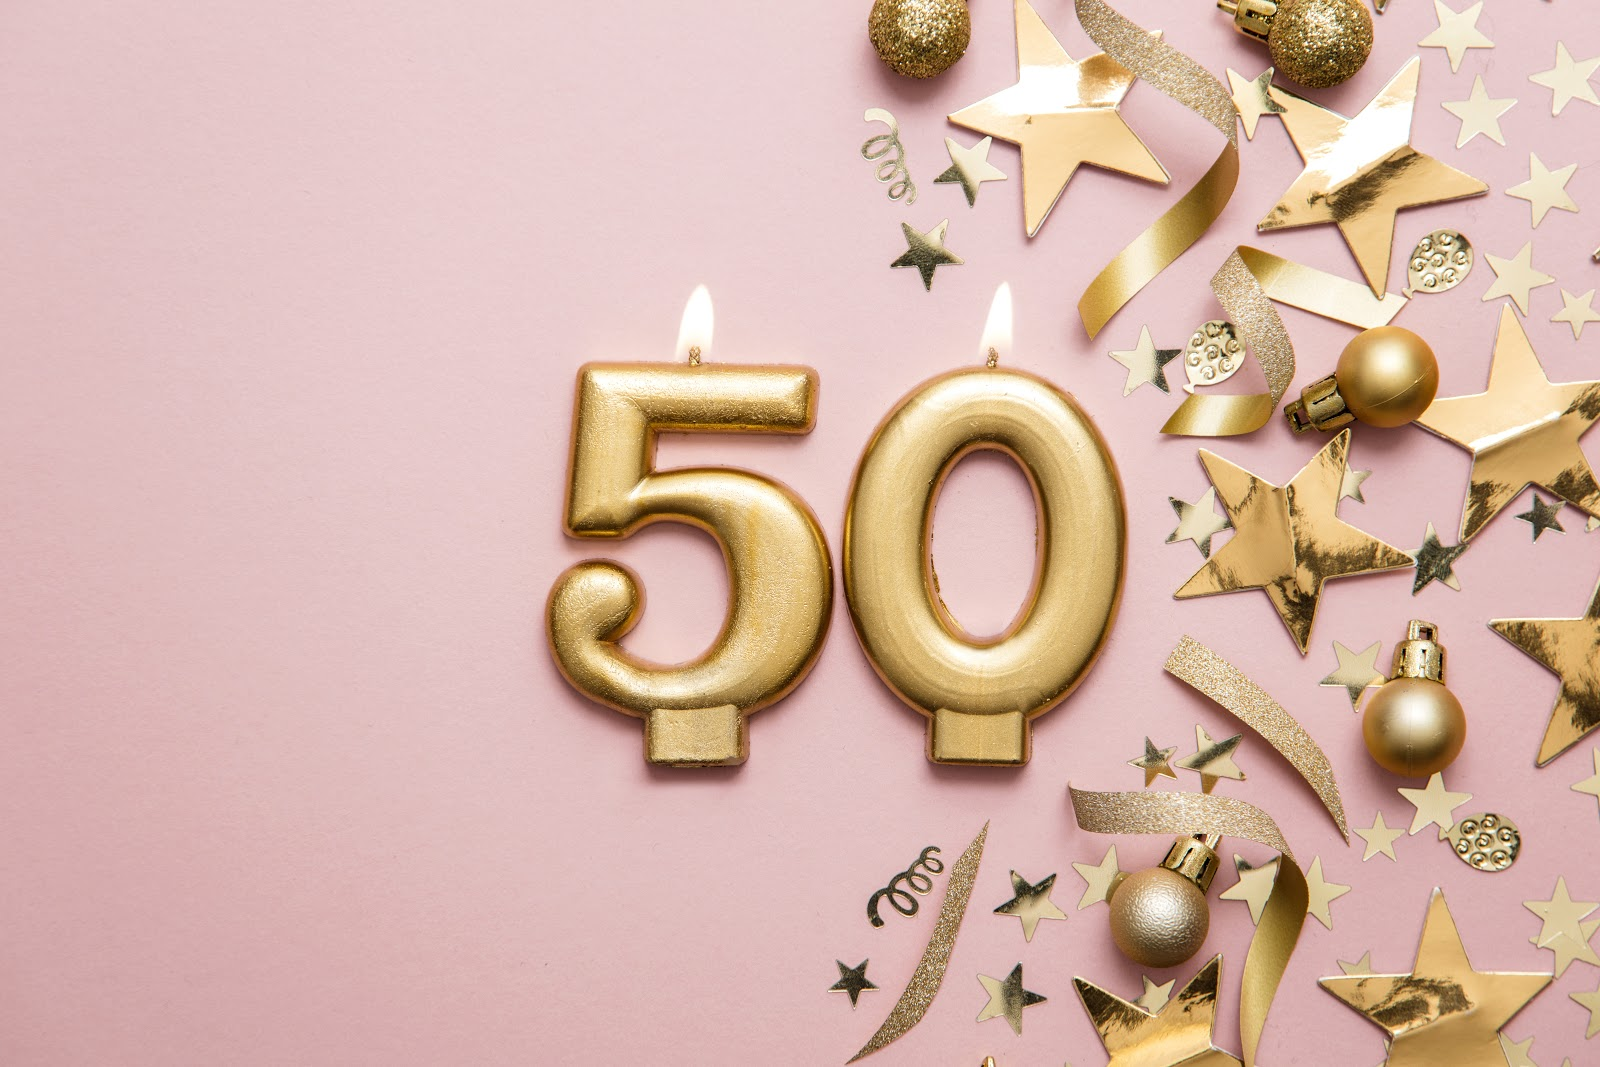 50th Birthday Party Ideas 25 Ways To Celebrate The Big Five Oh